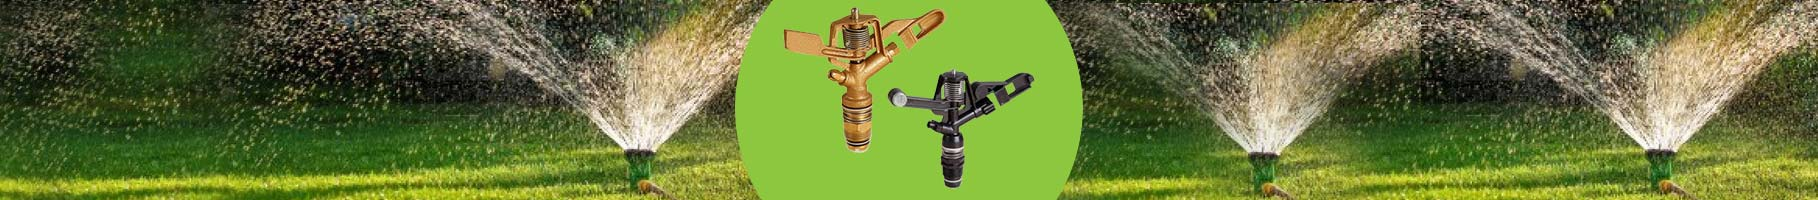 Brass Nozzle  | Khedut Irrigation, Leading manufacturer & Exporter of Drip Irrigation System, Landscapping Irringation Systems, Manufacturer & Exports of Drip Irrigation System, Emitting Pipes (Inline Lateral), Online Lateral, Drippers, Screen Filter, Disc Filter, Hydrocyclone Filter, Sand/Gravel Filter, Venturi, Fertilizer Tank, Drip Accessories, Sprinkler System, Landscapping Irrigation, Easy Tape, HDPE Pipes, Other Irrigation Products, Commercial, Agriculture & Industrial Landscape, Gold Irrigation Systems, irrigation, sprinkler, system, rotor, rotary sprinklers, watering, commercial irrigation, drip irrigation, residential irrigation, turf, contractor, landscaping, lawn watering, lawn sprinklers, gardening, spray head, controllers, valves, Drip Accessories, Sprinkler Accessories, pipes, irrigation fittings, irrigation, pvc fitting, filters.